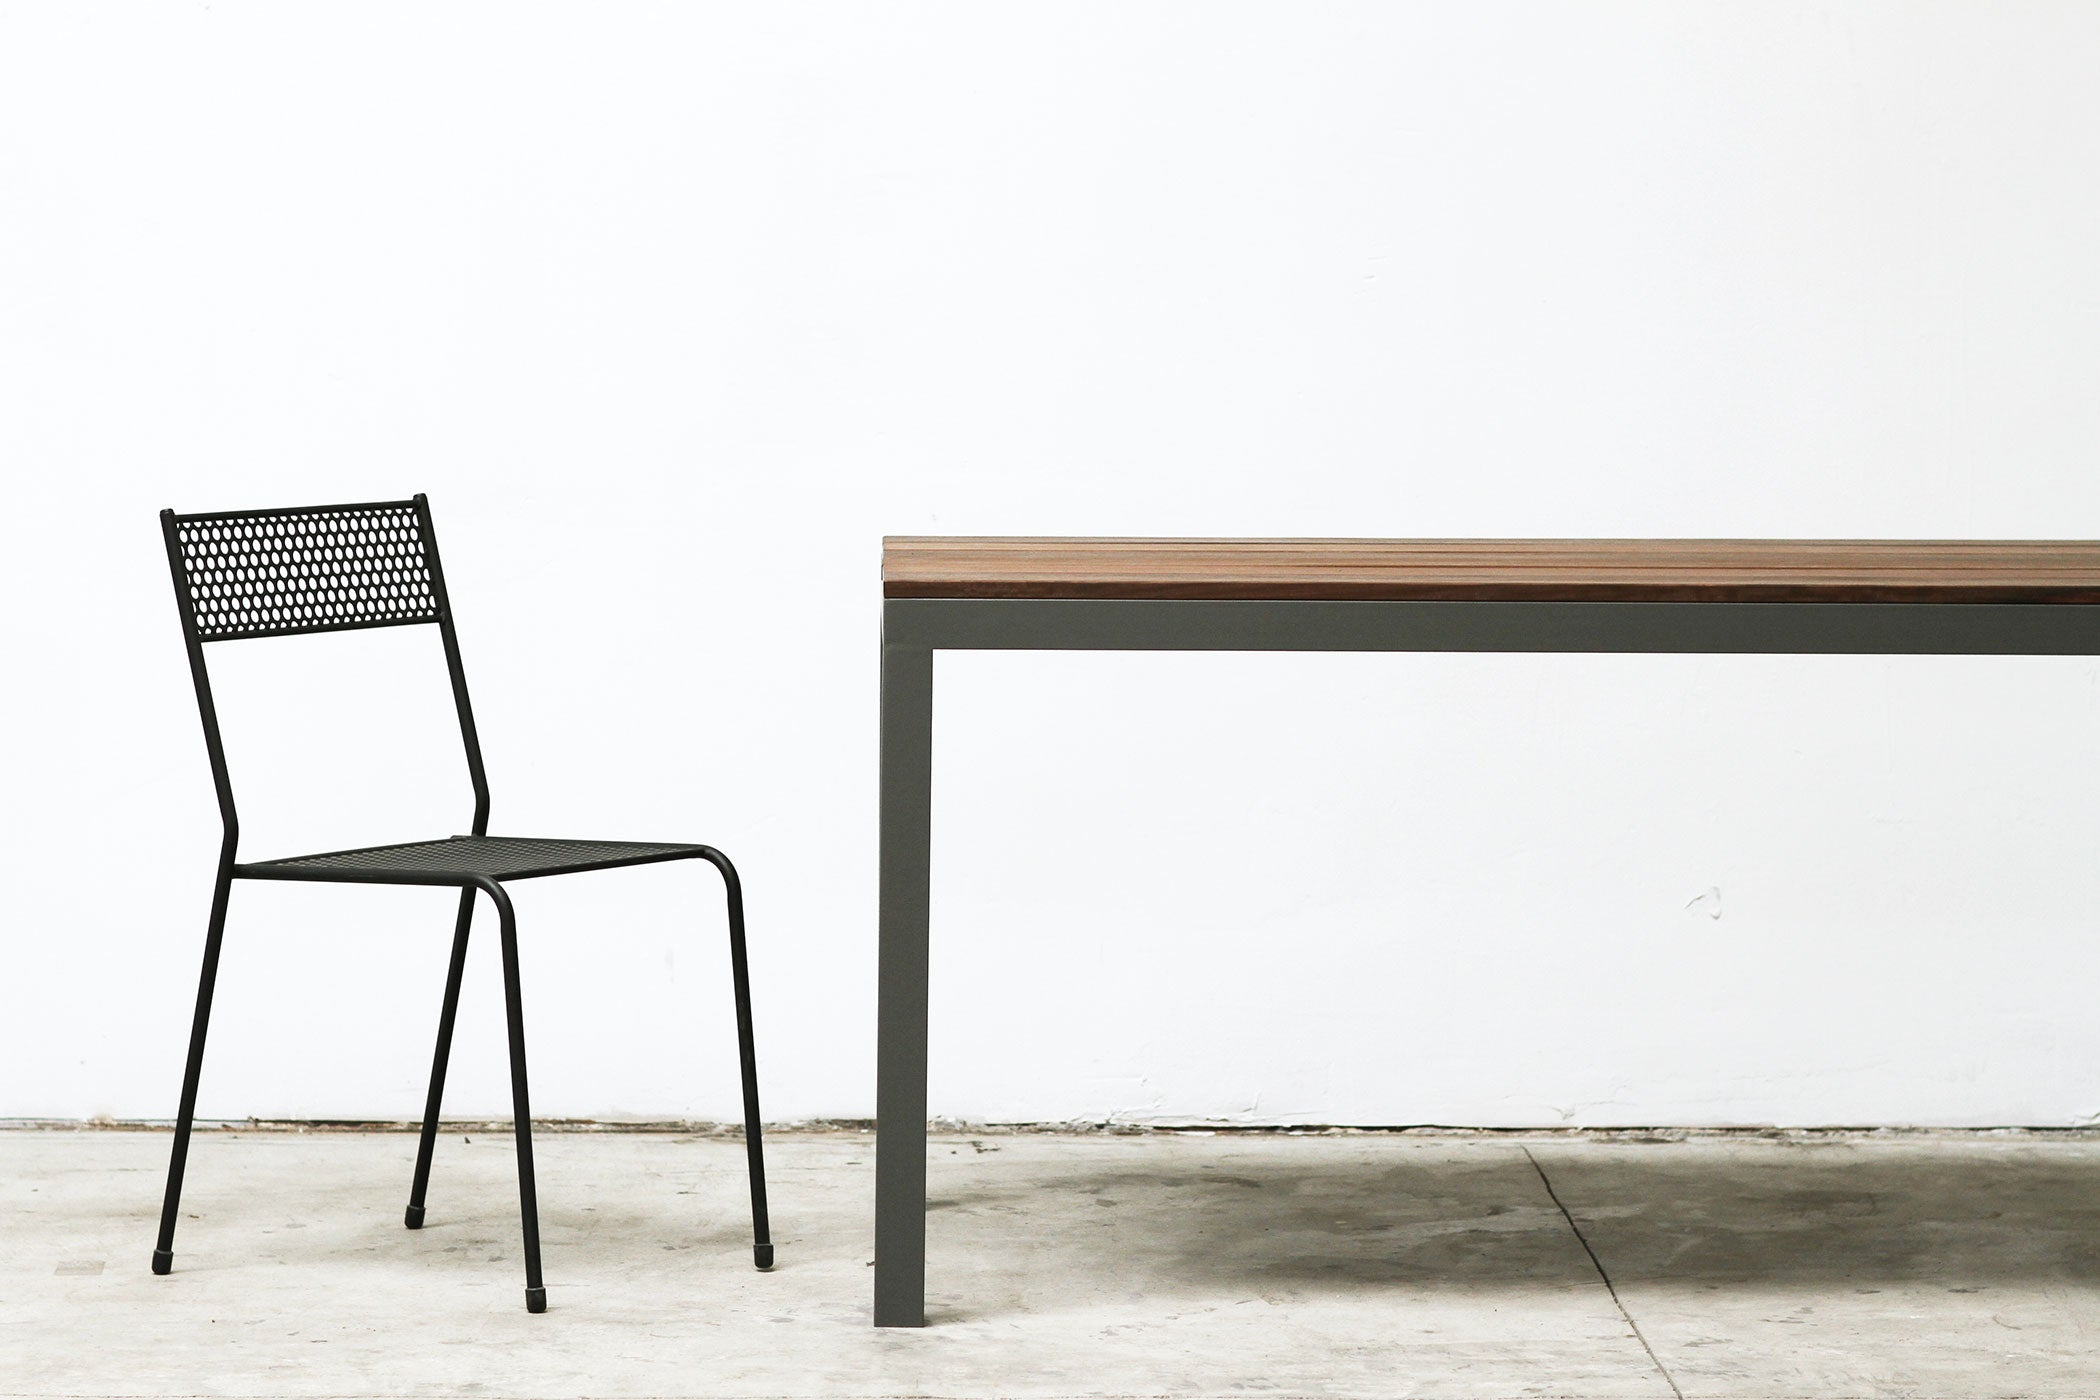 RAD Furniture's Slatted Wood-top Dining Table and Perforated Cafe Chair